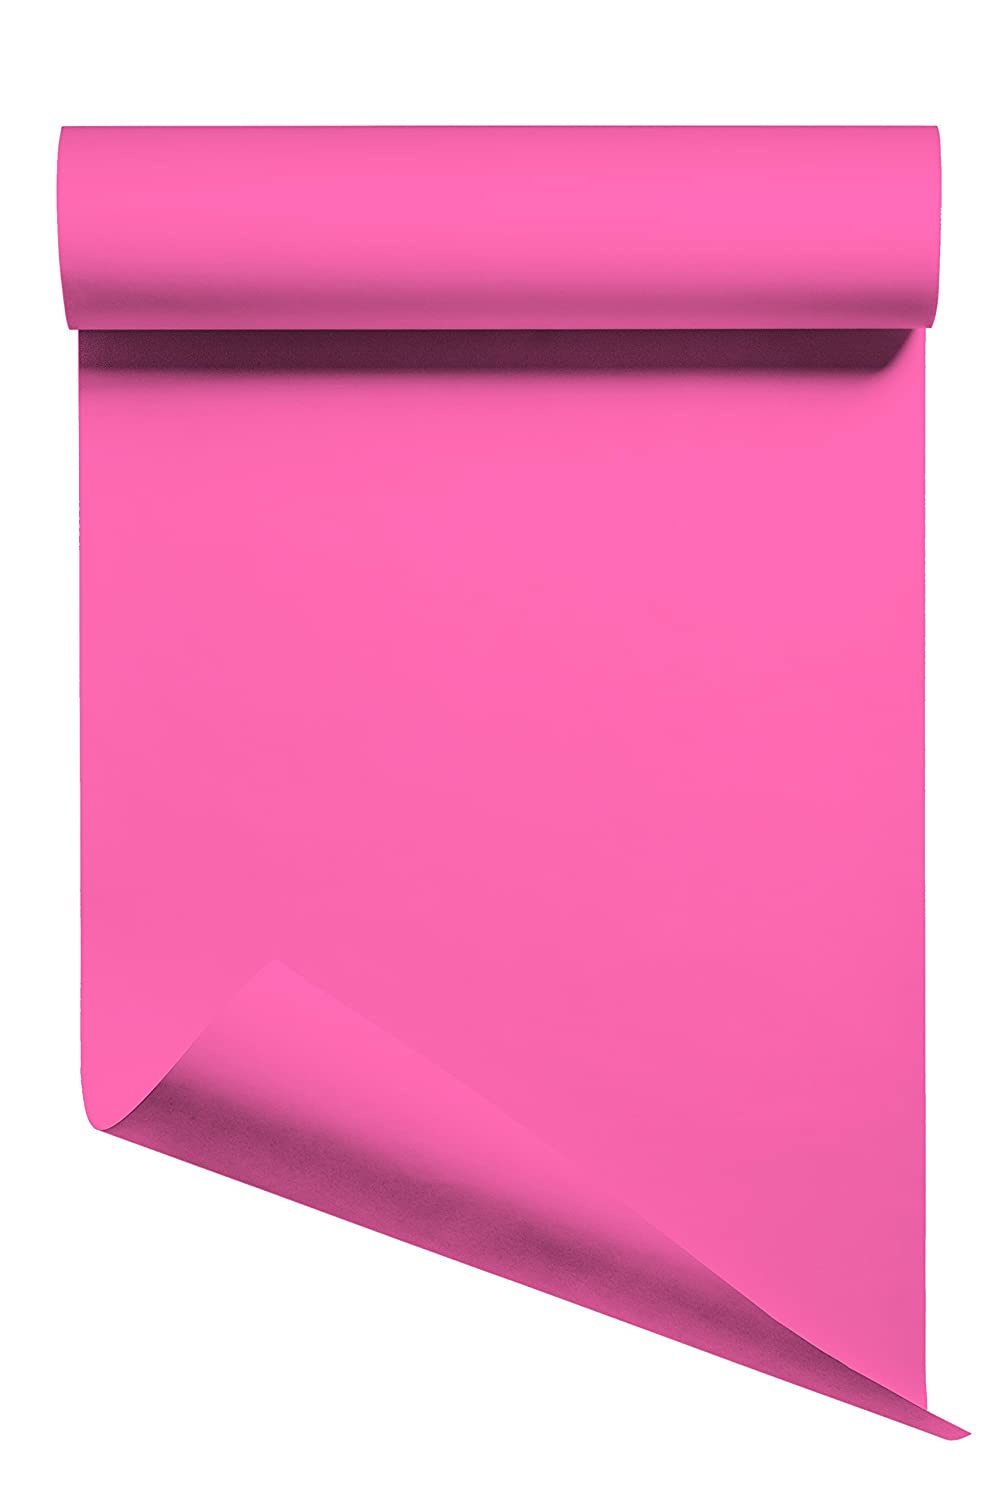 Heat Transfer Vinyl HTV/Iron-on 12 Inches by 3 Feet Roll (Pink)